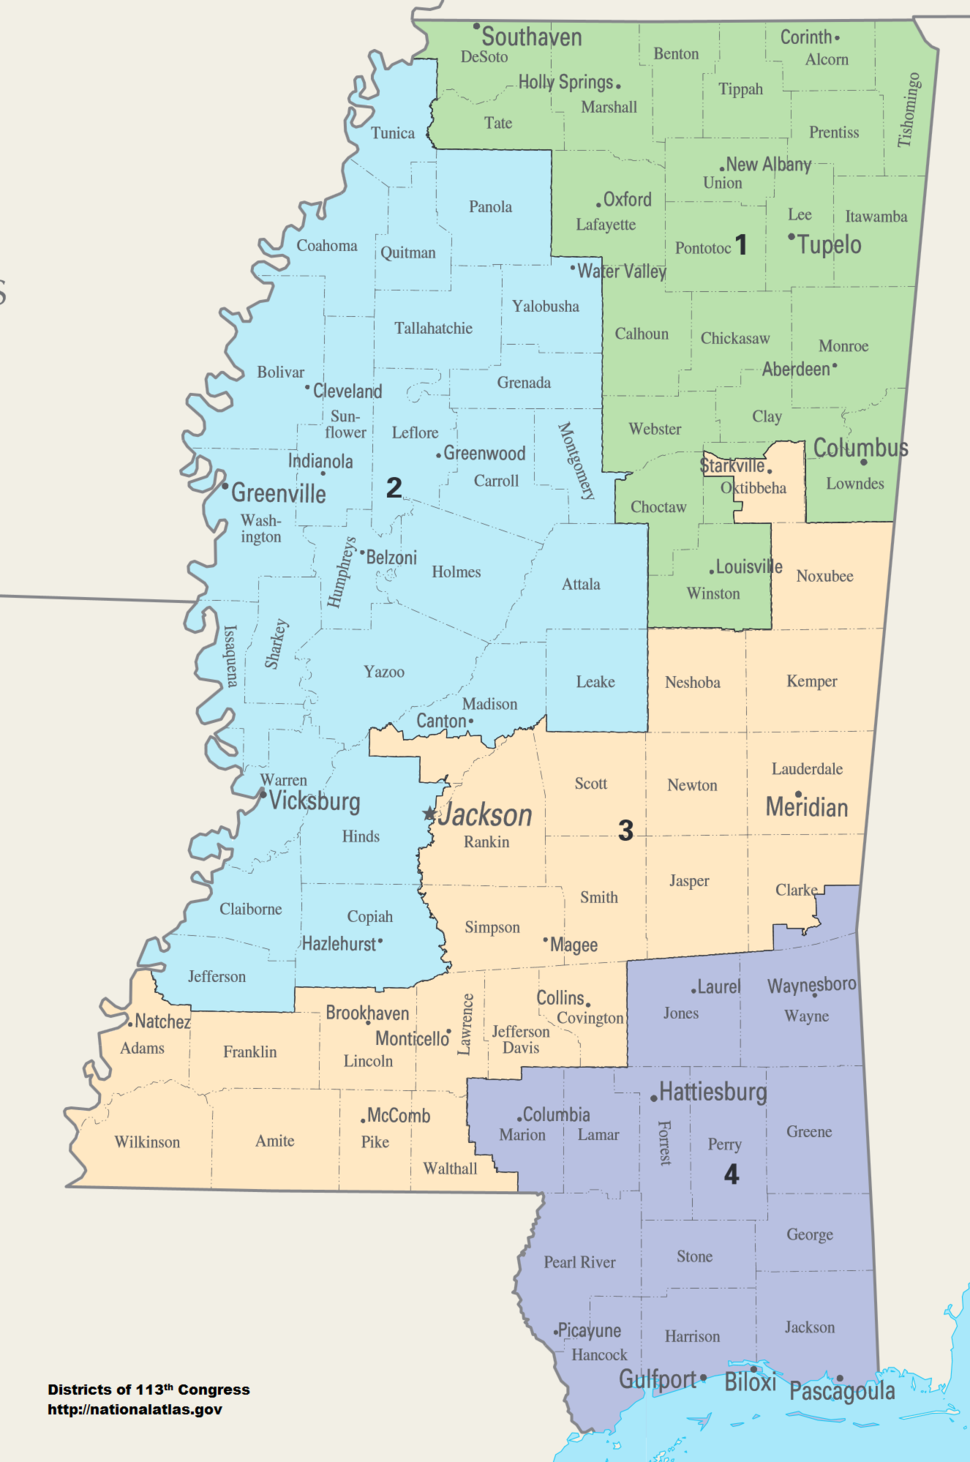 Mississippi Congressional Districts, 113th Congress